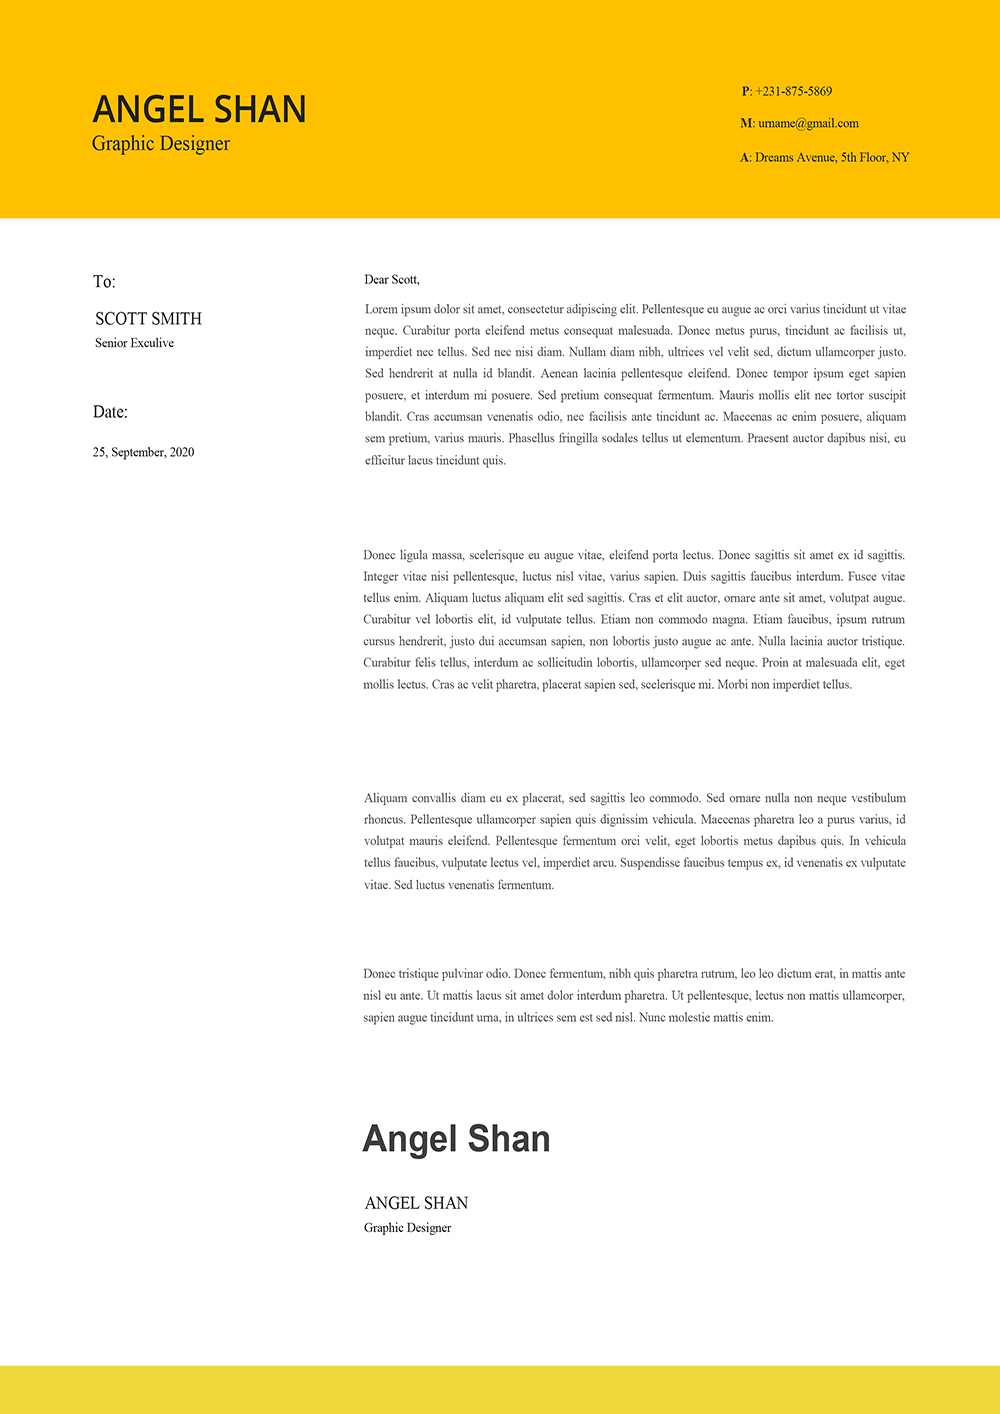 Simple Clean Cover Letter Template 2021 To Download in ...